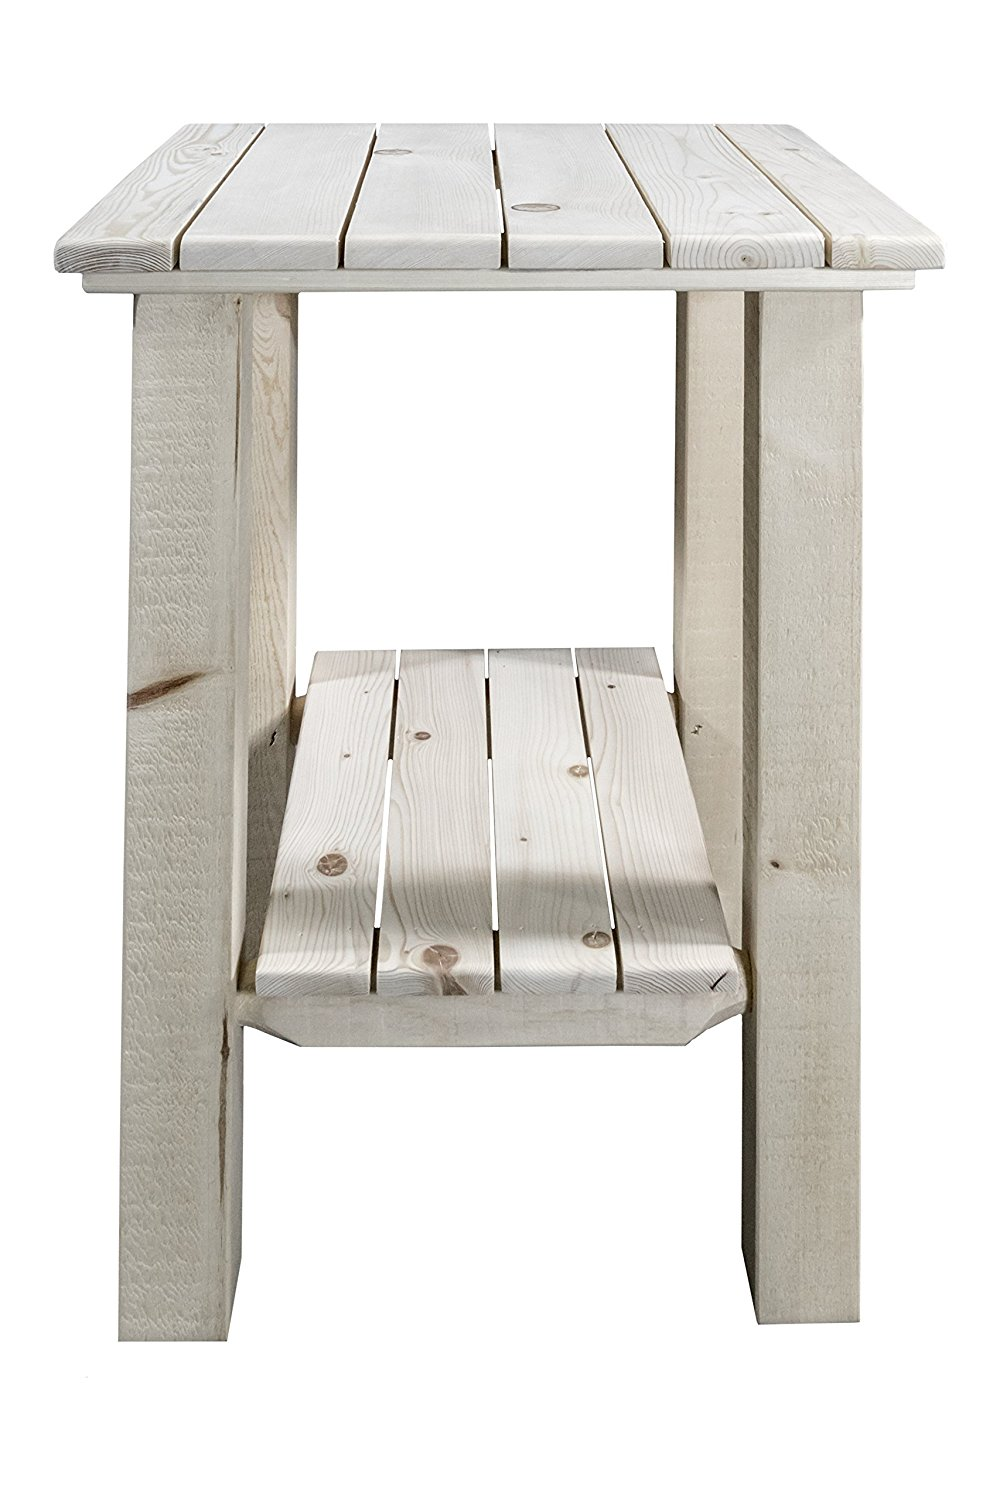 Montana Woodworks Homestead Collection Exterior End Table, Ready to Finish